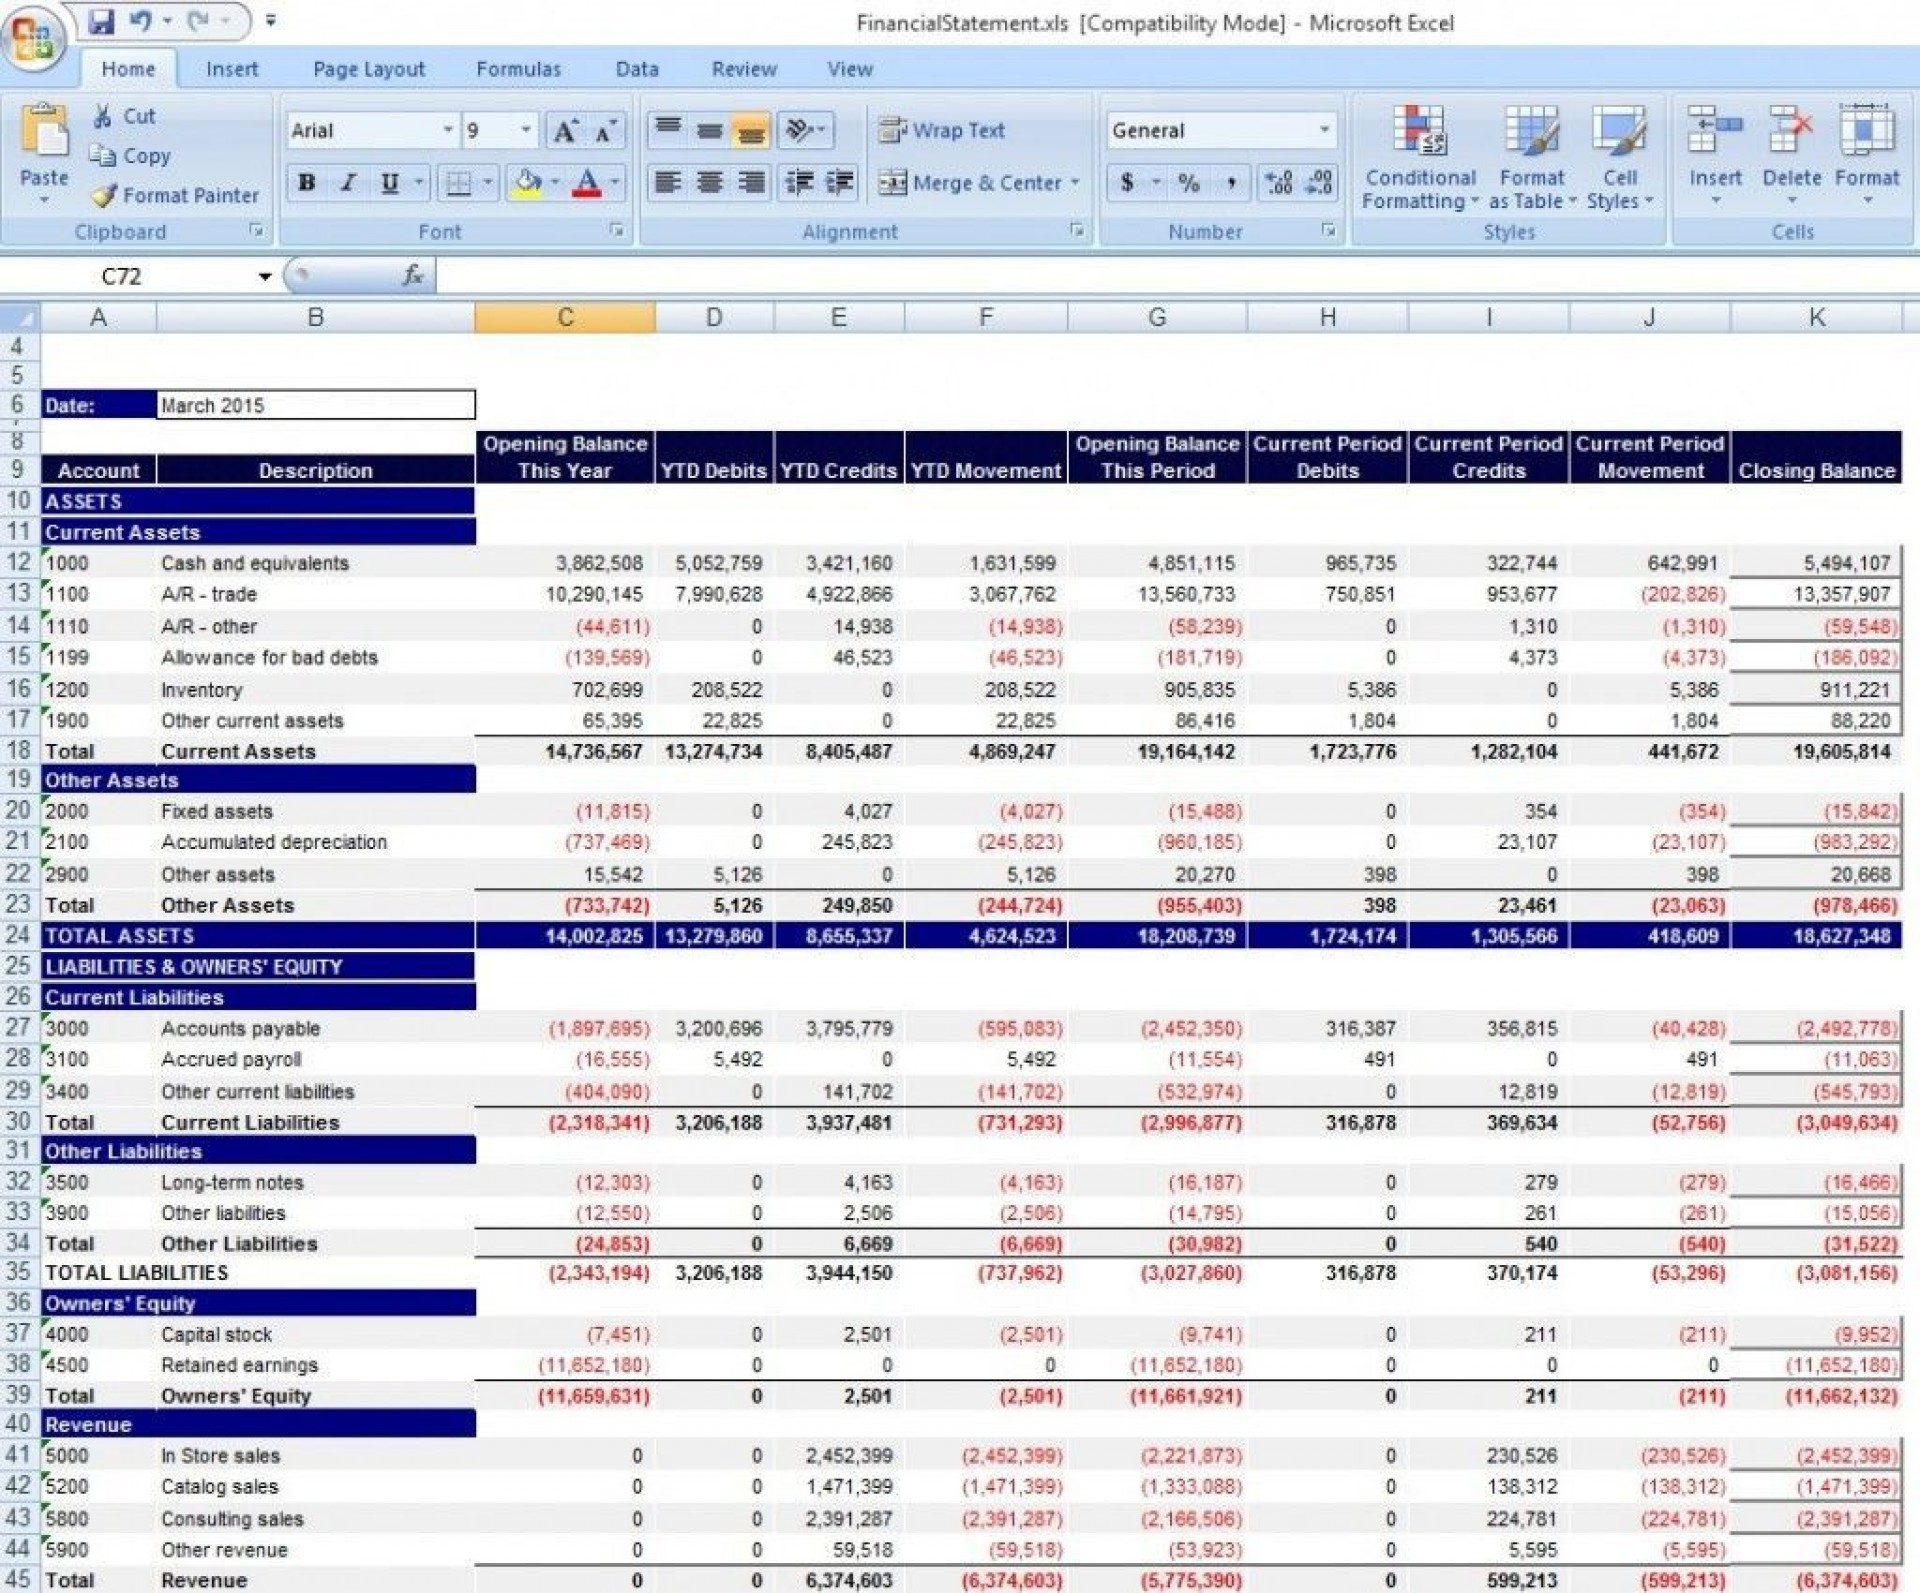 001 Magnificent Income Statement Format In Excel With Formula Image 1920